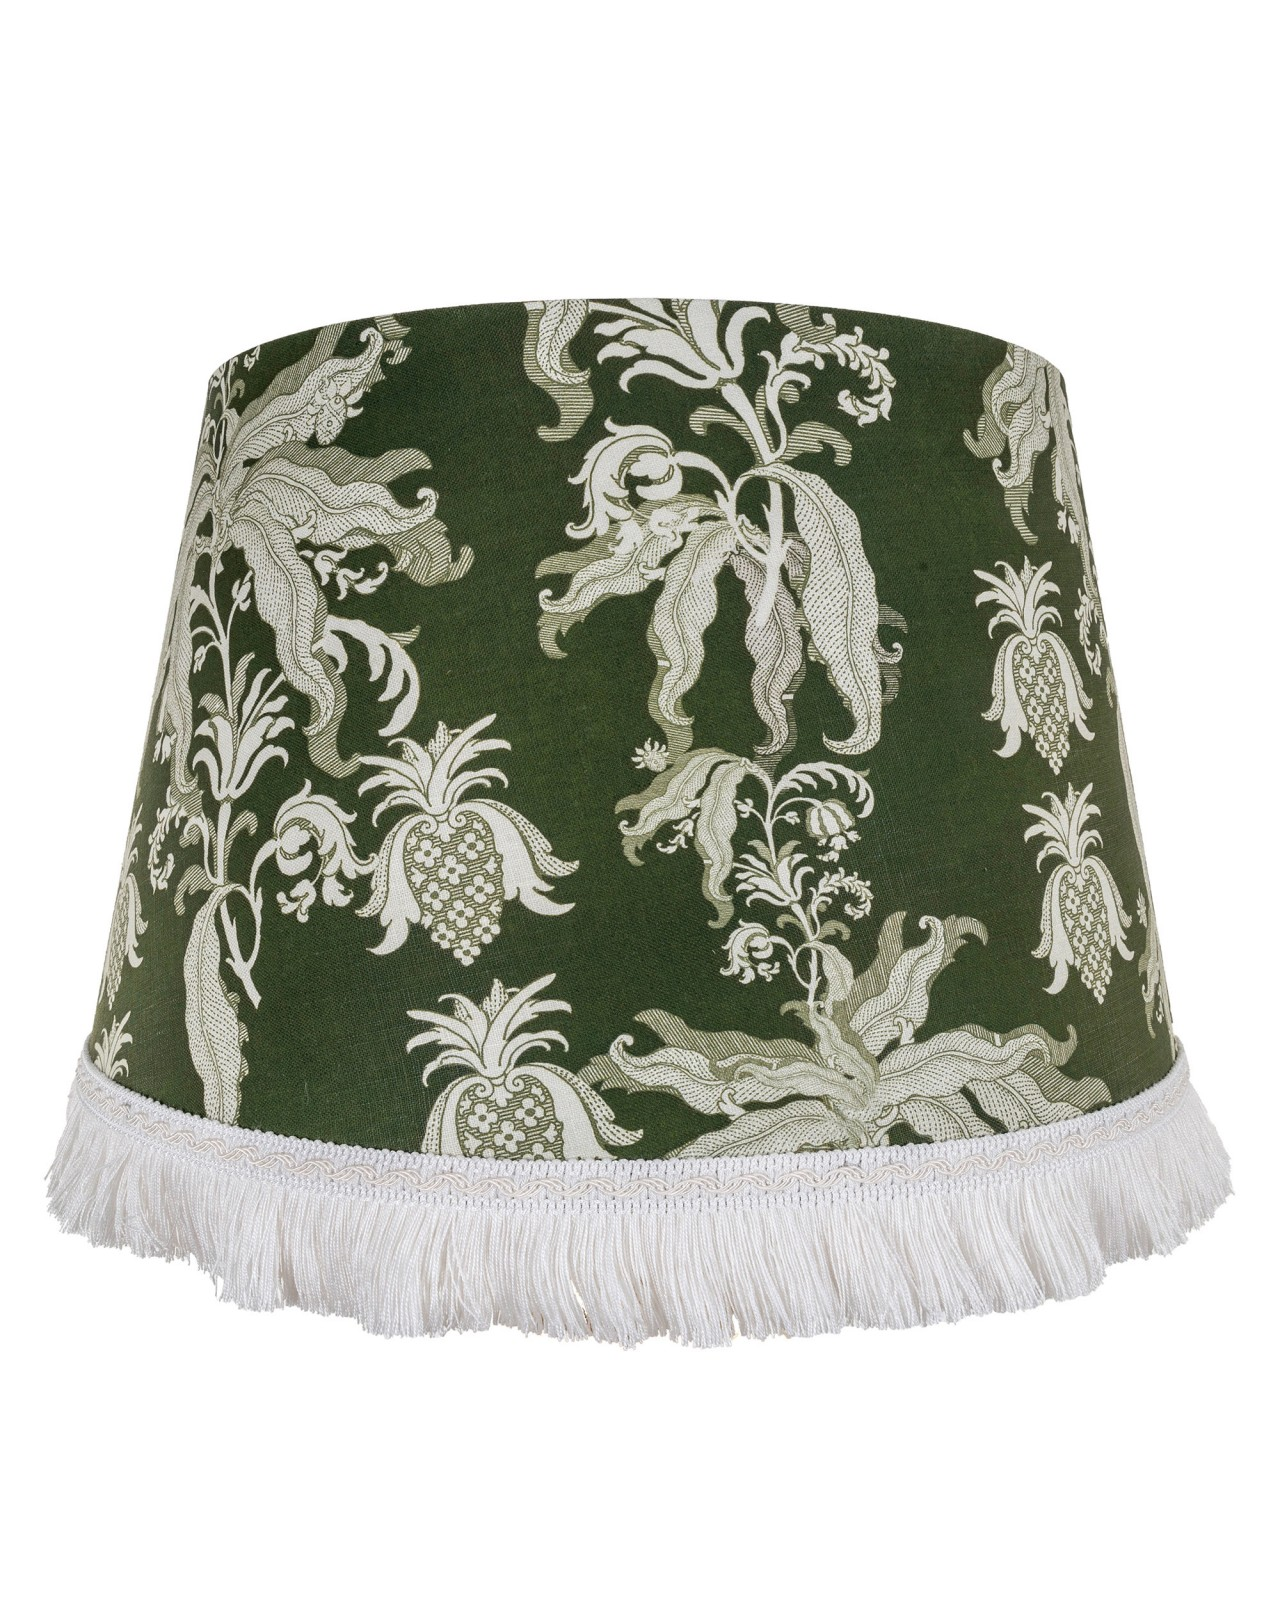 GUINEO Green Lampshade